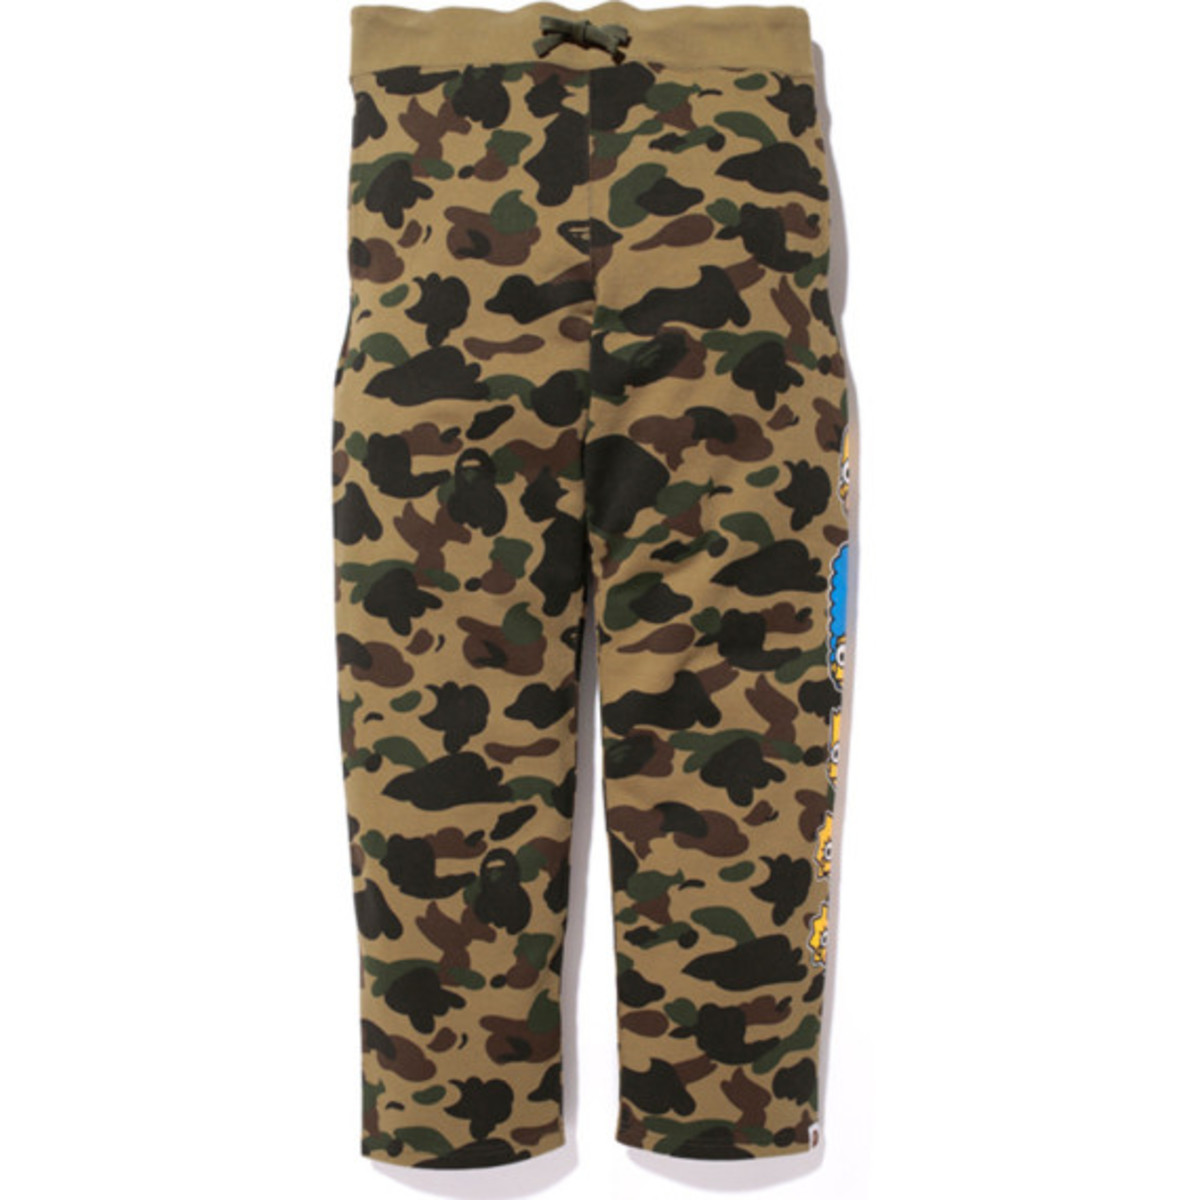 the-simpsons-bape-collection-available-06